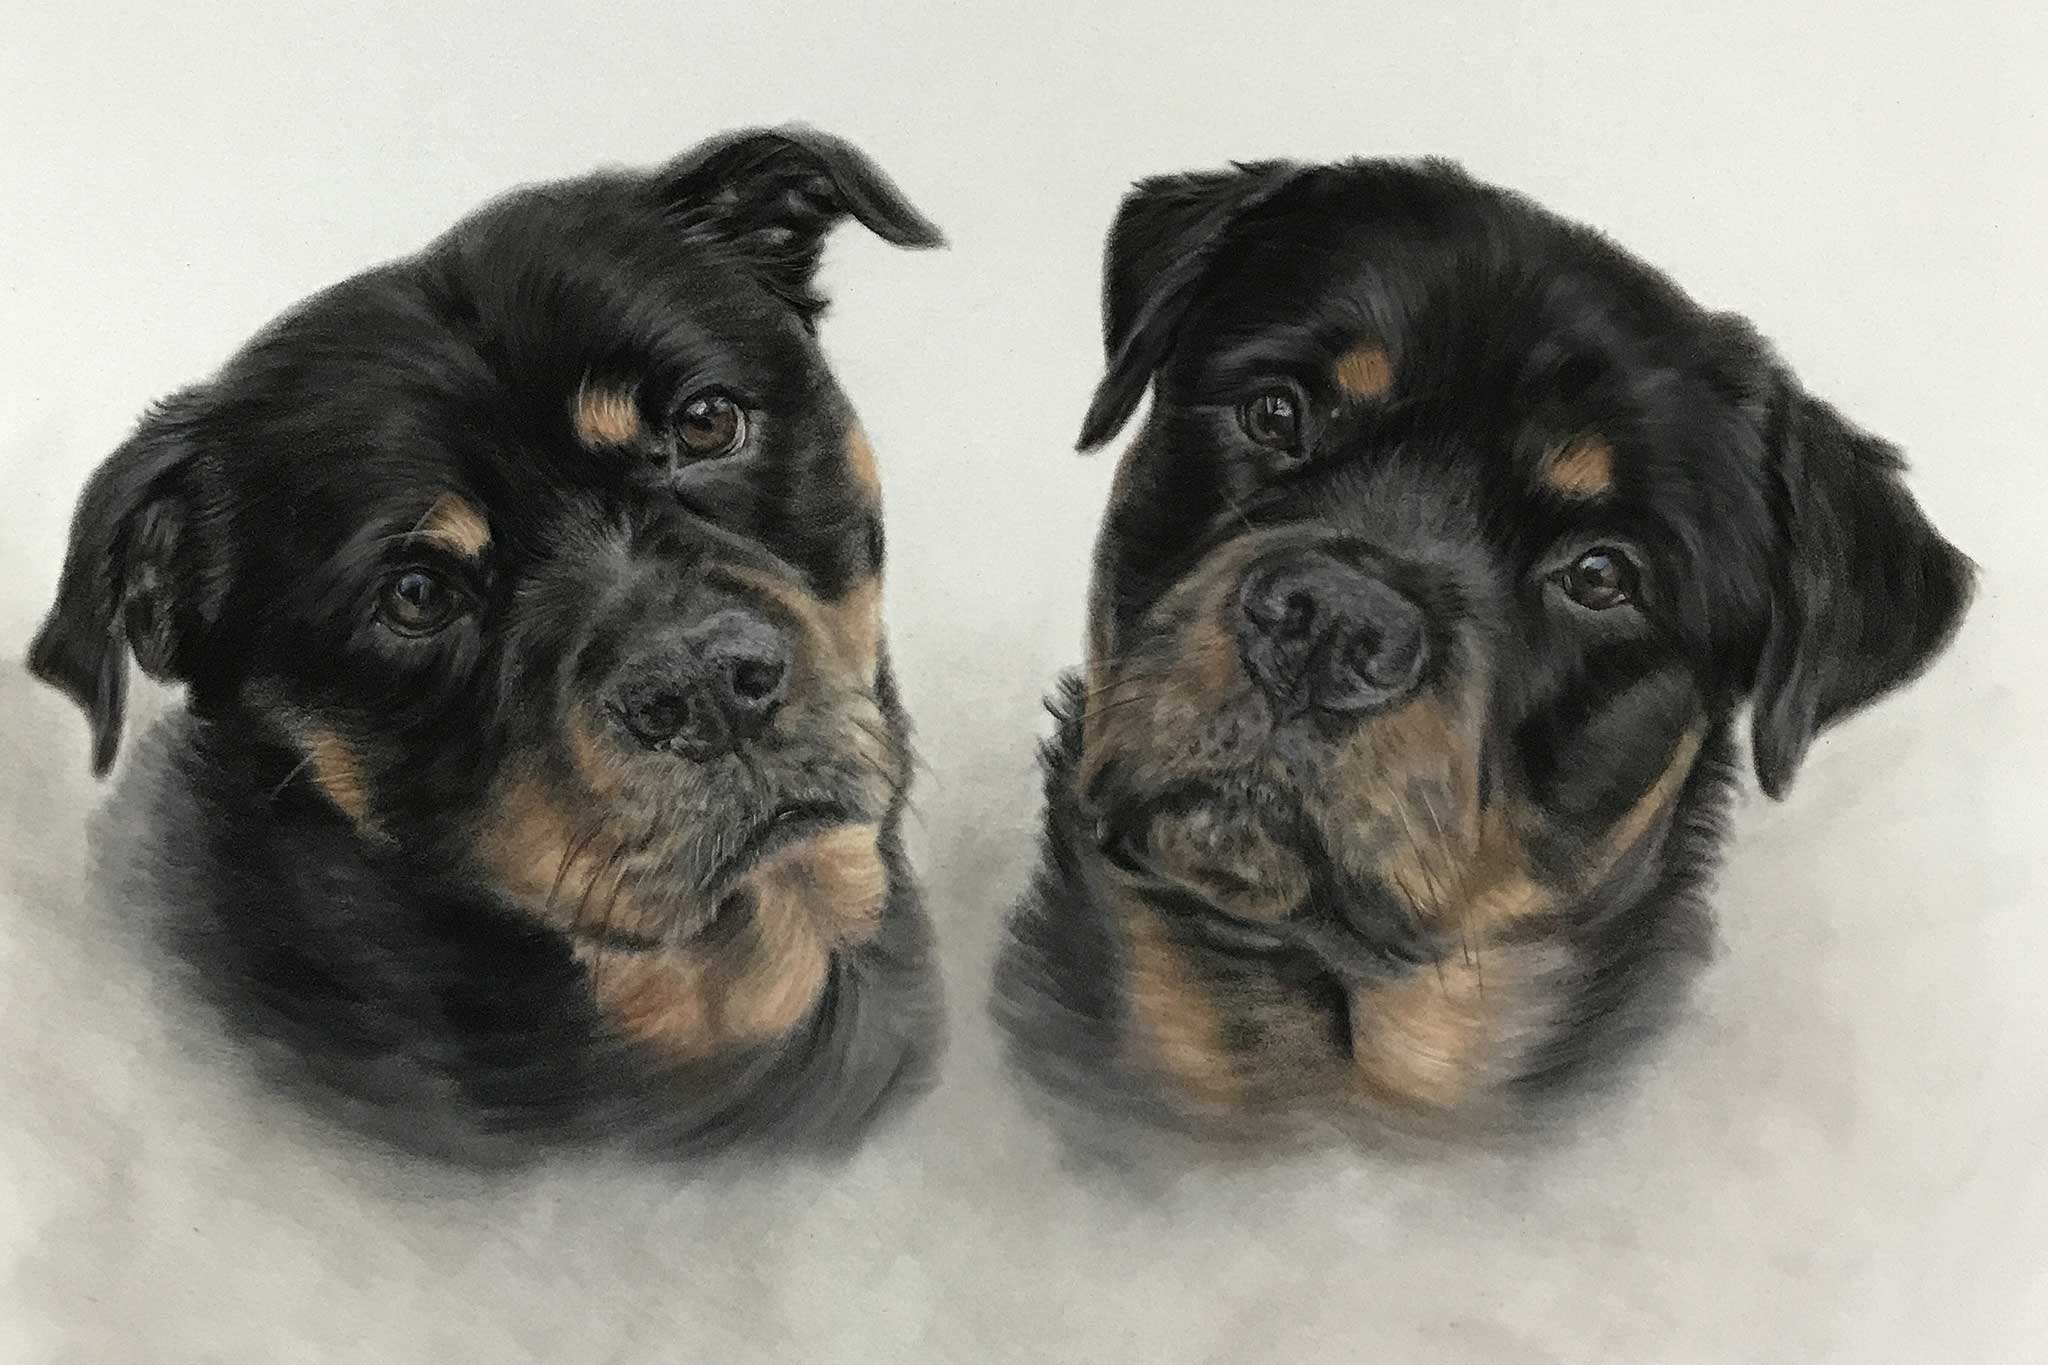 Pet Portraits - Two Rottweilers